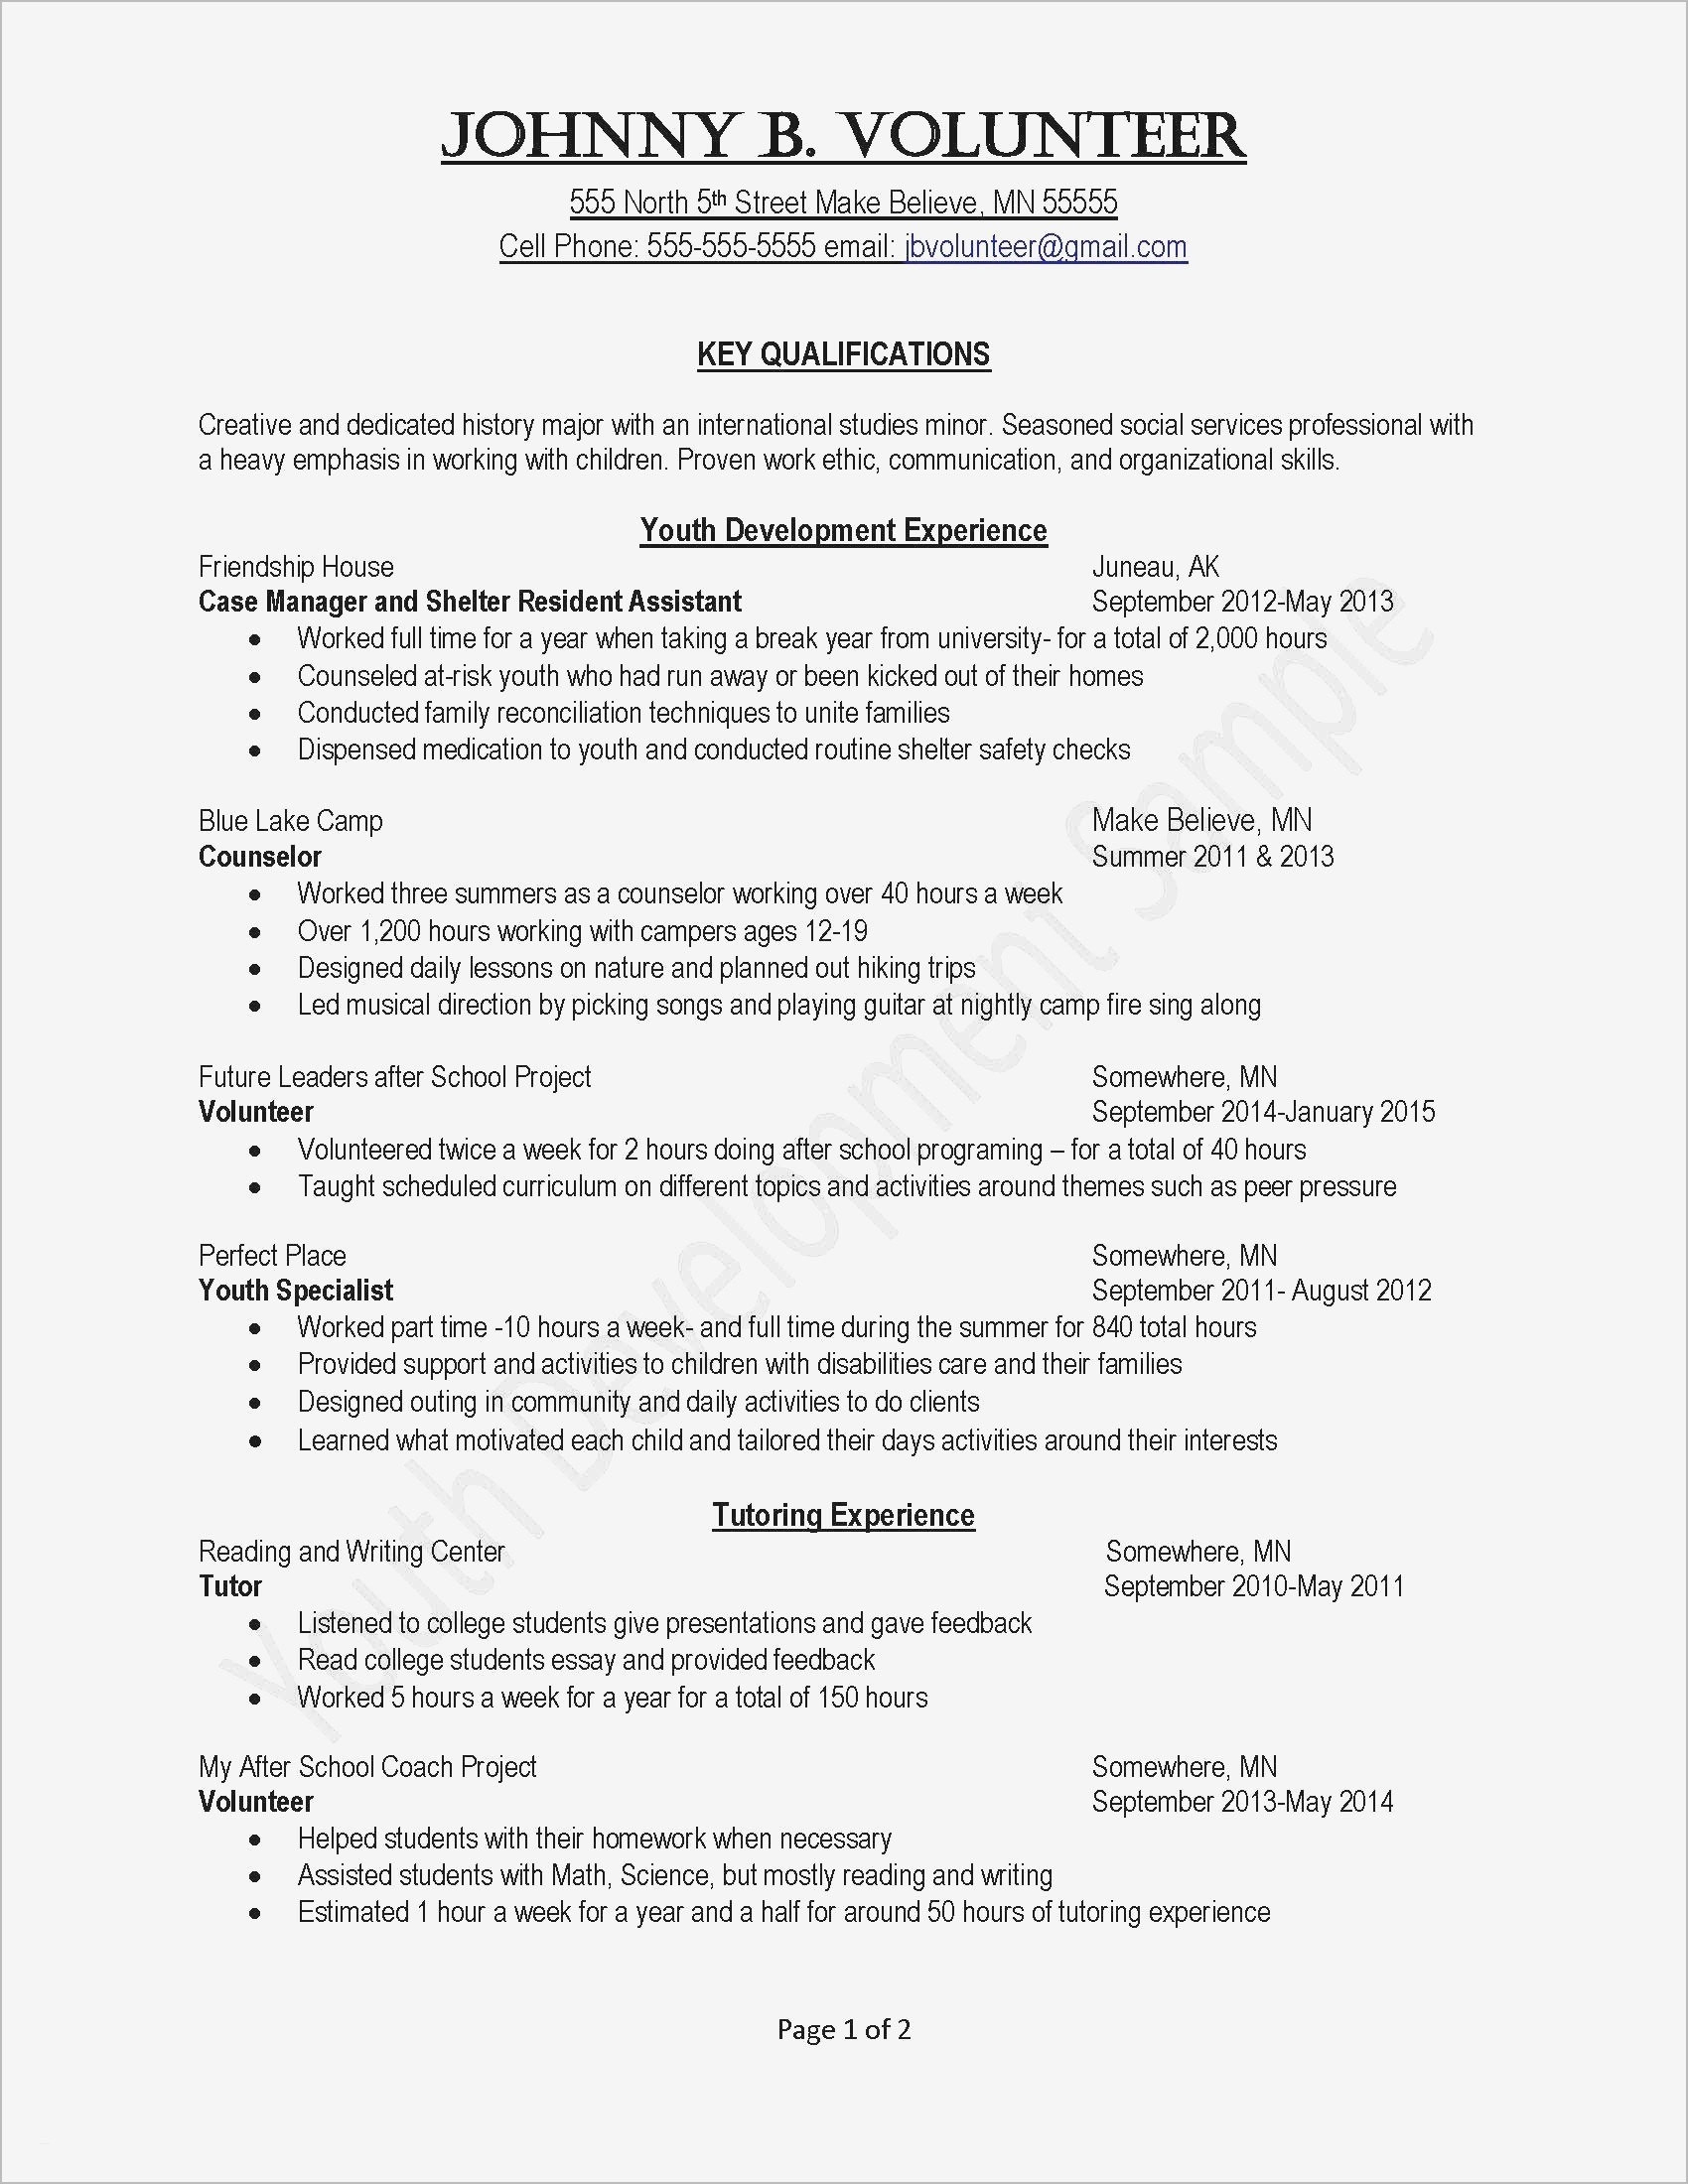 cfo resume template Collection-Template For A Resume Inspirationa Cfo Resume Template Inspirational Actor Resumes 0d – Letter Templates 14-e